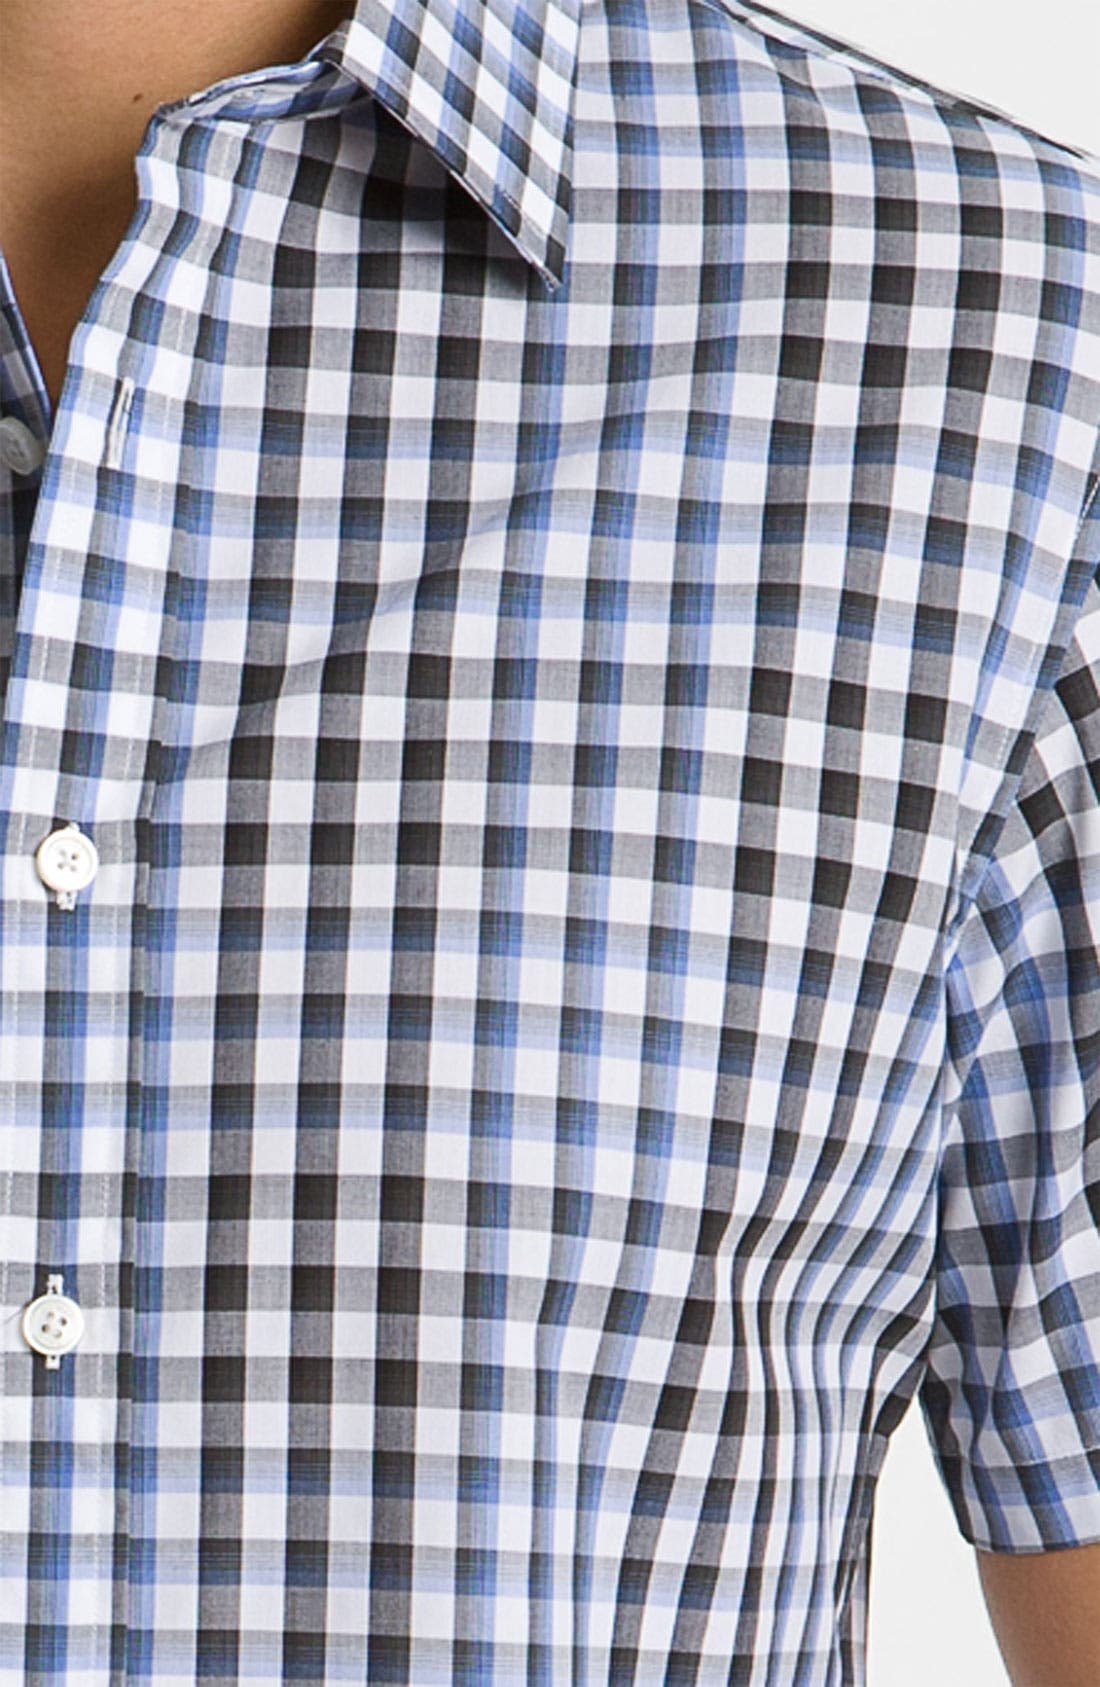 Alternate Image 3  - Michael Kors 'Nils' Check Plaid Woven Shirt